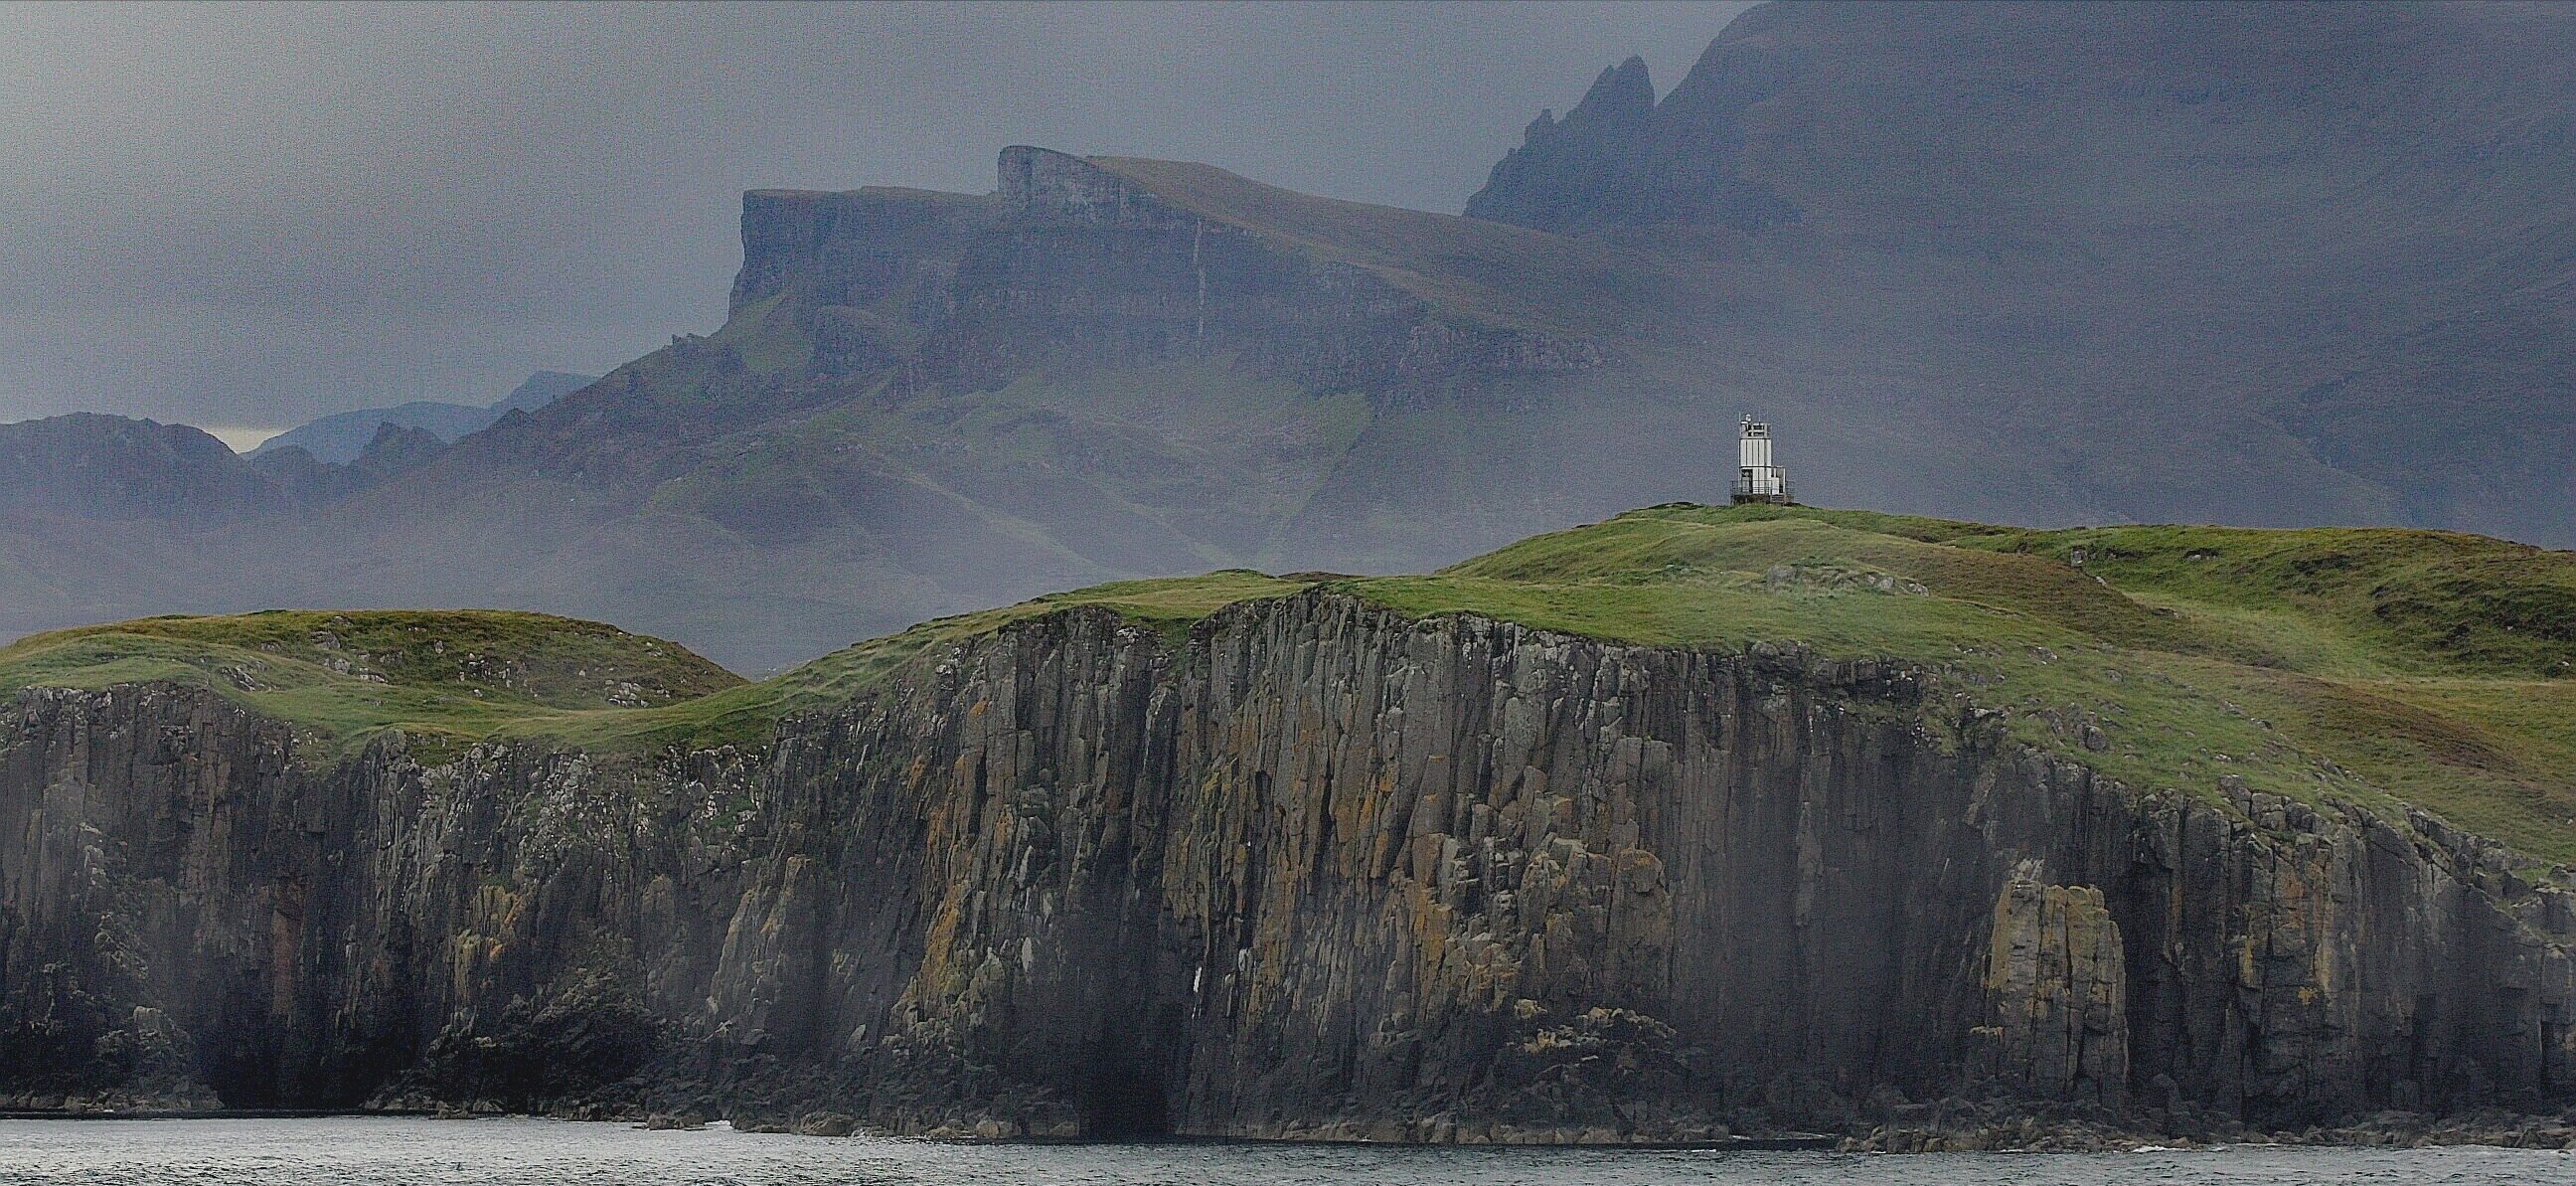 Northern tip of the Isle of Skye.